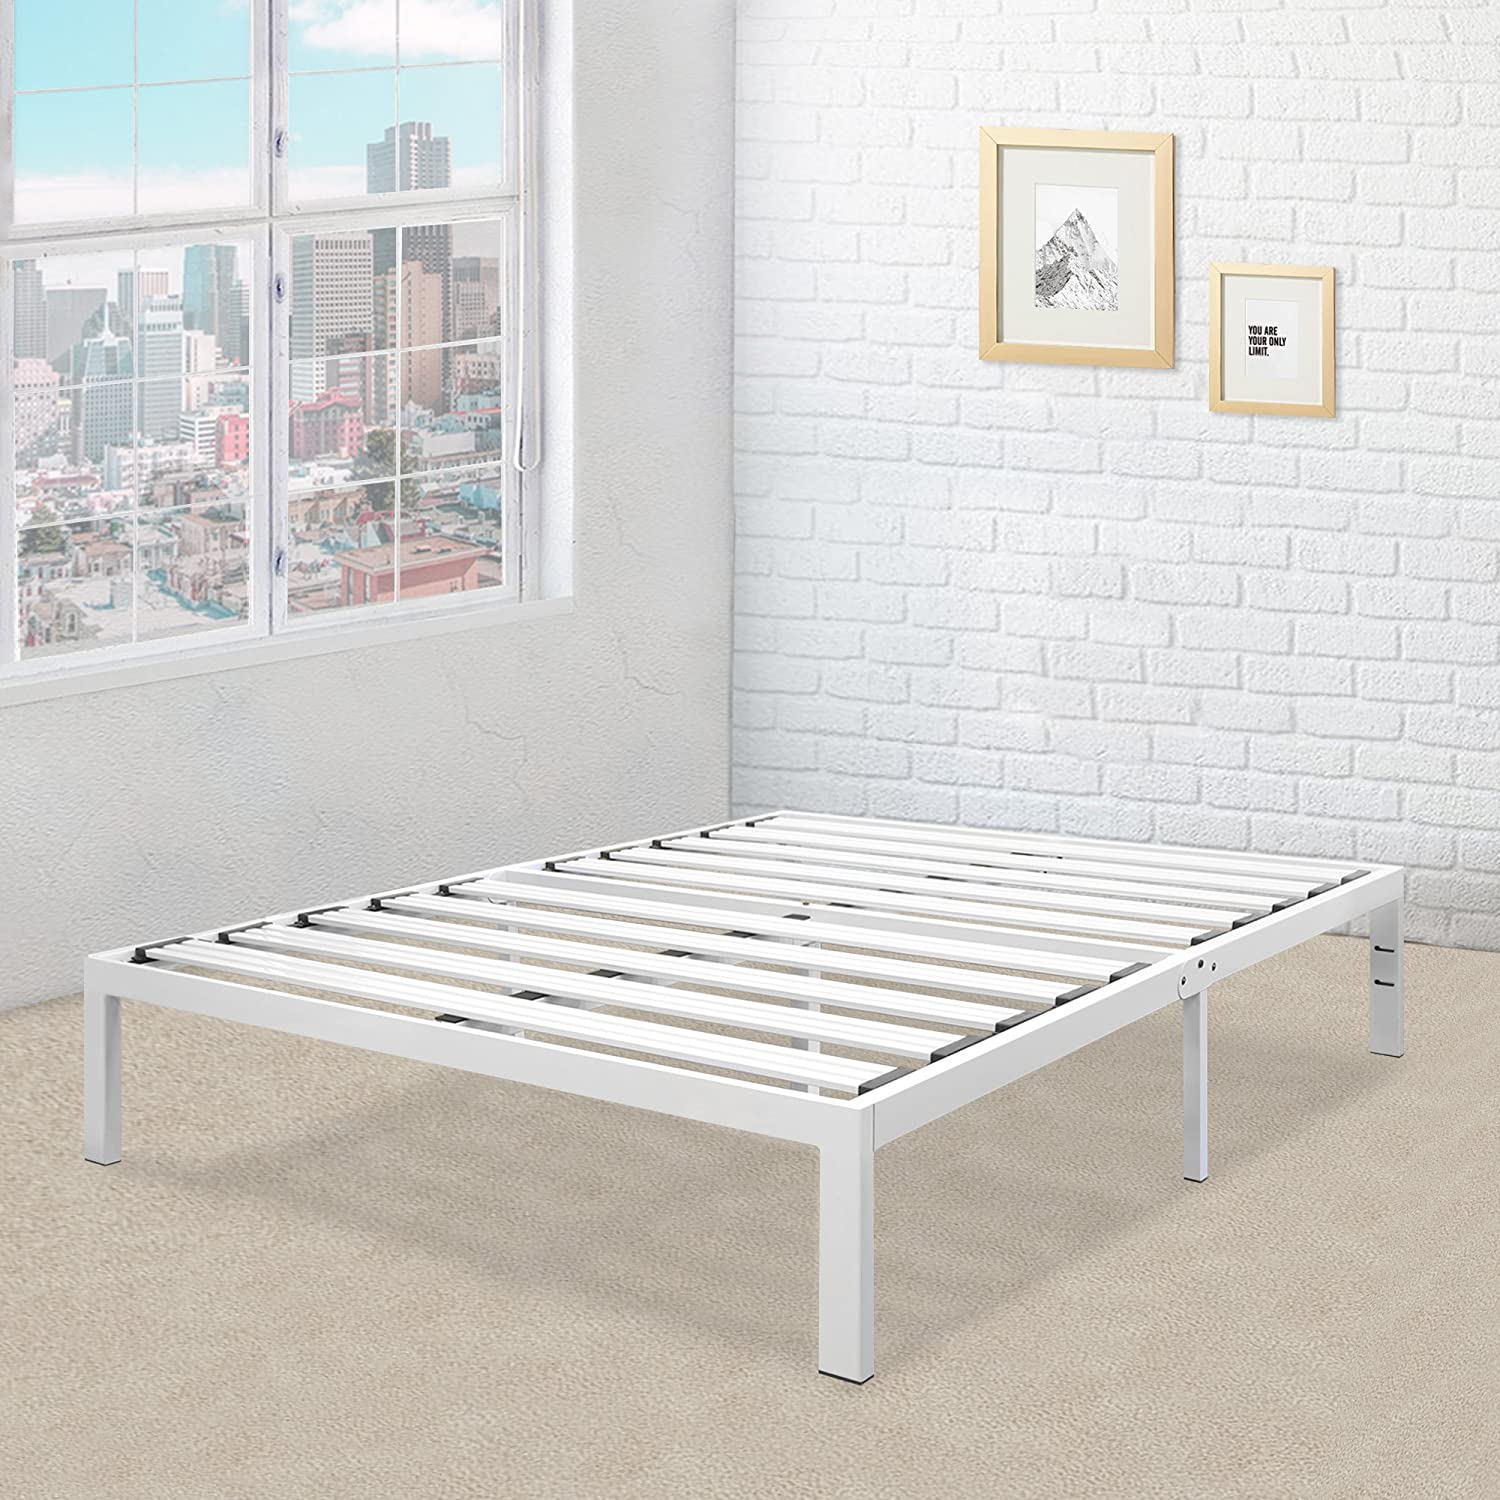 Heavy Duty Steel Slat Platform Bed White, Twin / Sturdy, Durable Metal Bed Frame